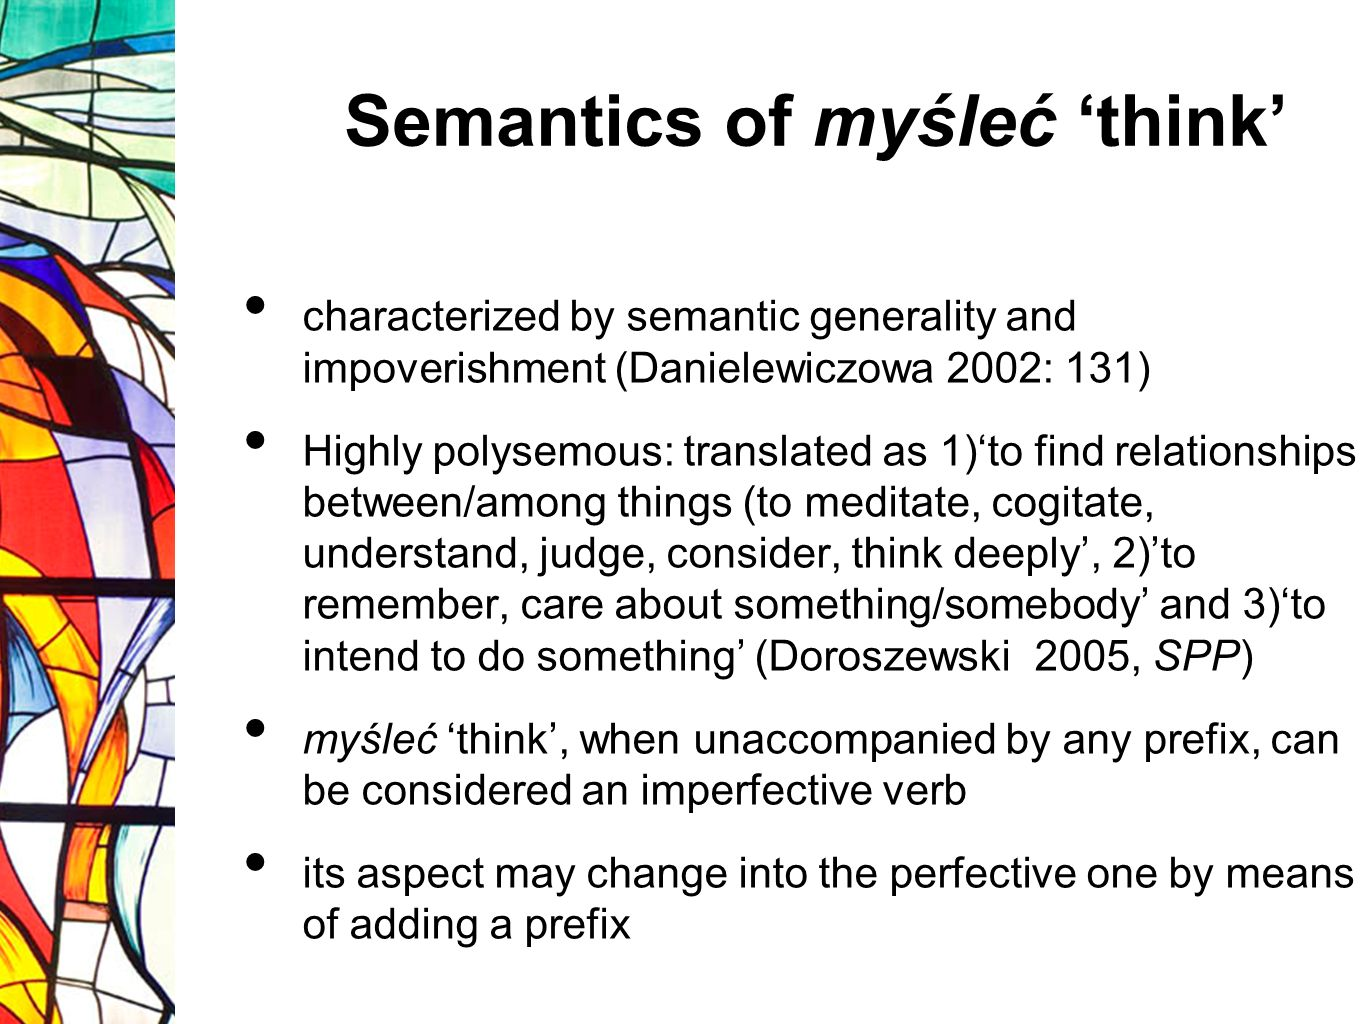 Semantics of myśleć think characterized by semantic generality and impoverishment (Danielewiczowa 2002: 131) Highly polysemous: translated as 1)to find relationships between/among things (to meditate, cogitate, understand, judge, consider, think deeply, 2)to remember, care about something/somebody and 3)to intend to do something (Doroszewski 2005, SPP) myśleć think, when unaccompanied by any prefix, can be considered an imperfective verb its aspect may change into the perfective one by means of adding a prefix